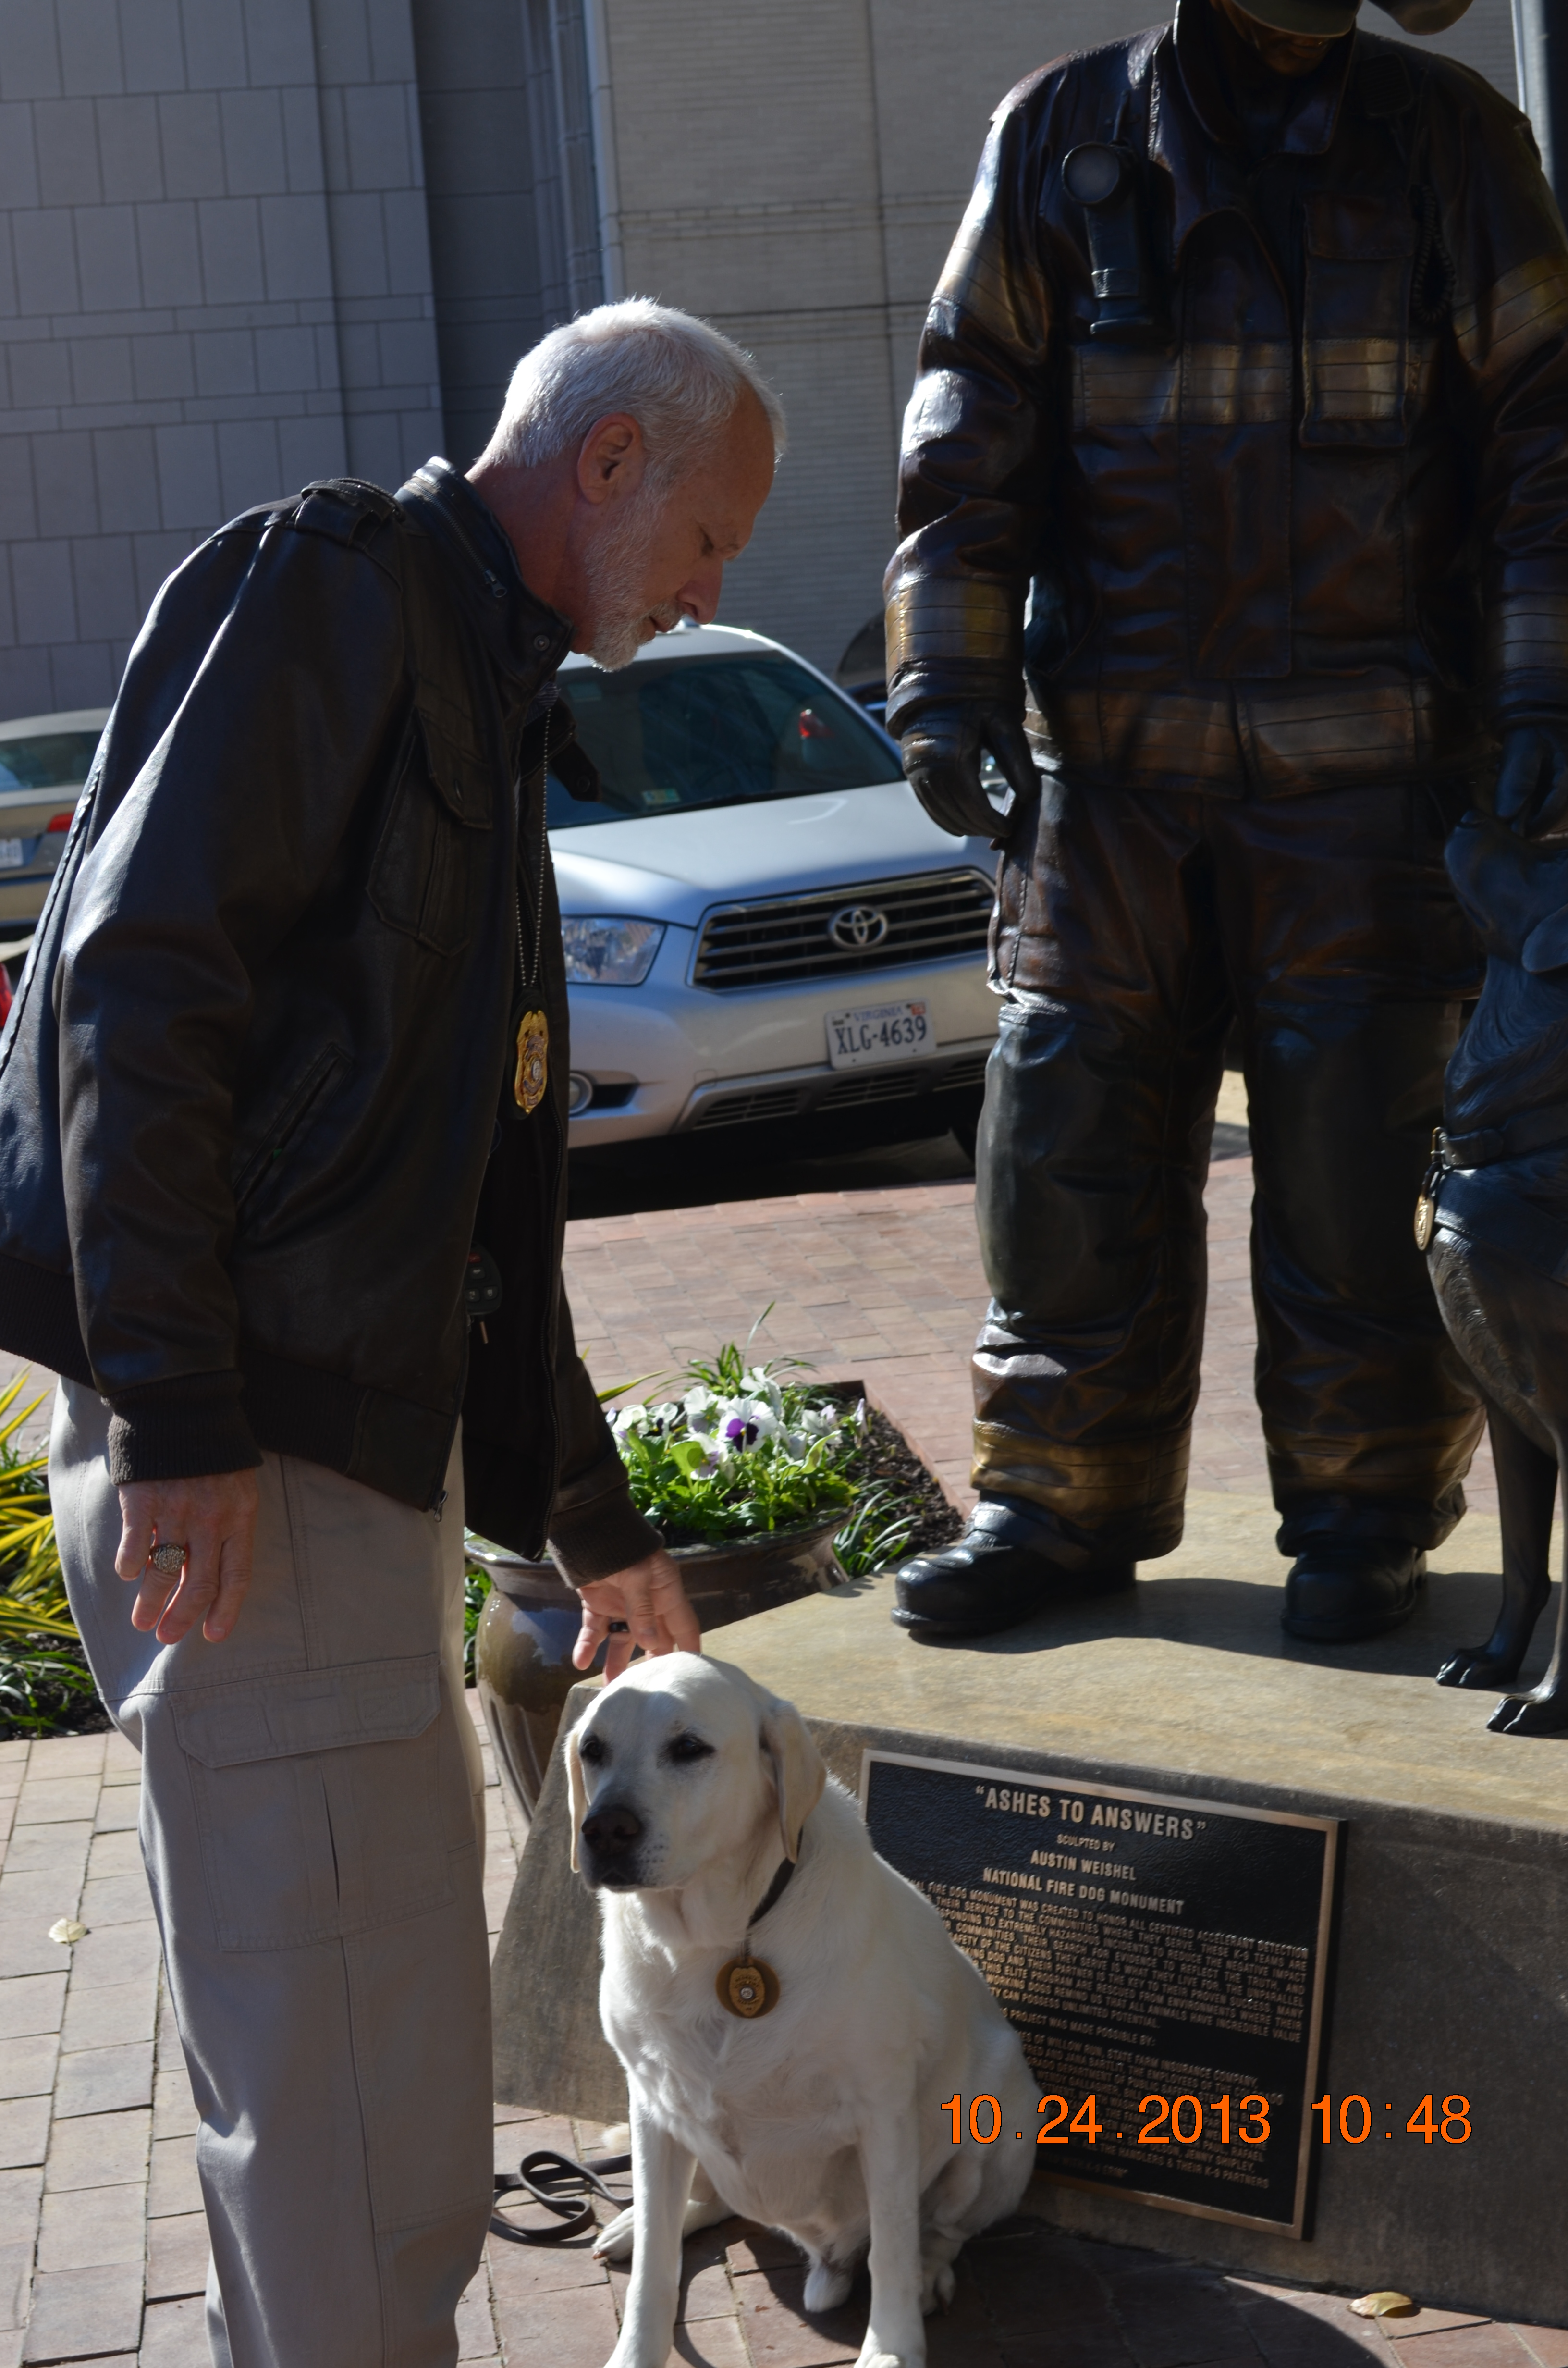 Investigator Gourley and K-9 Cotton at the National Fire Dog Monument in Washington, DC.